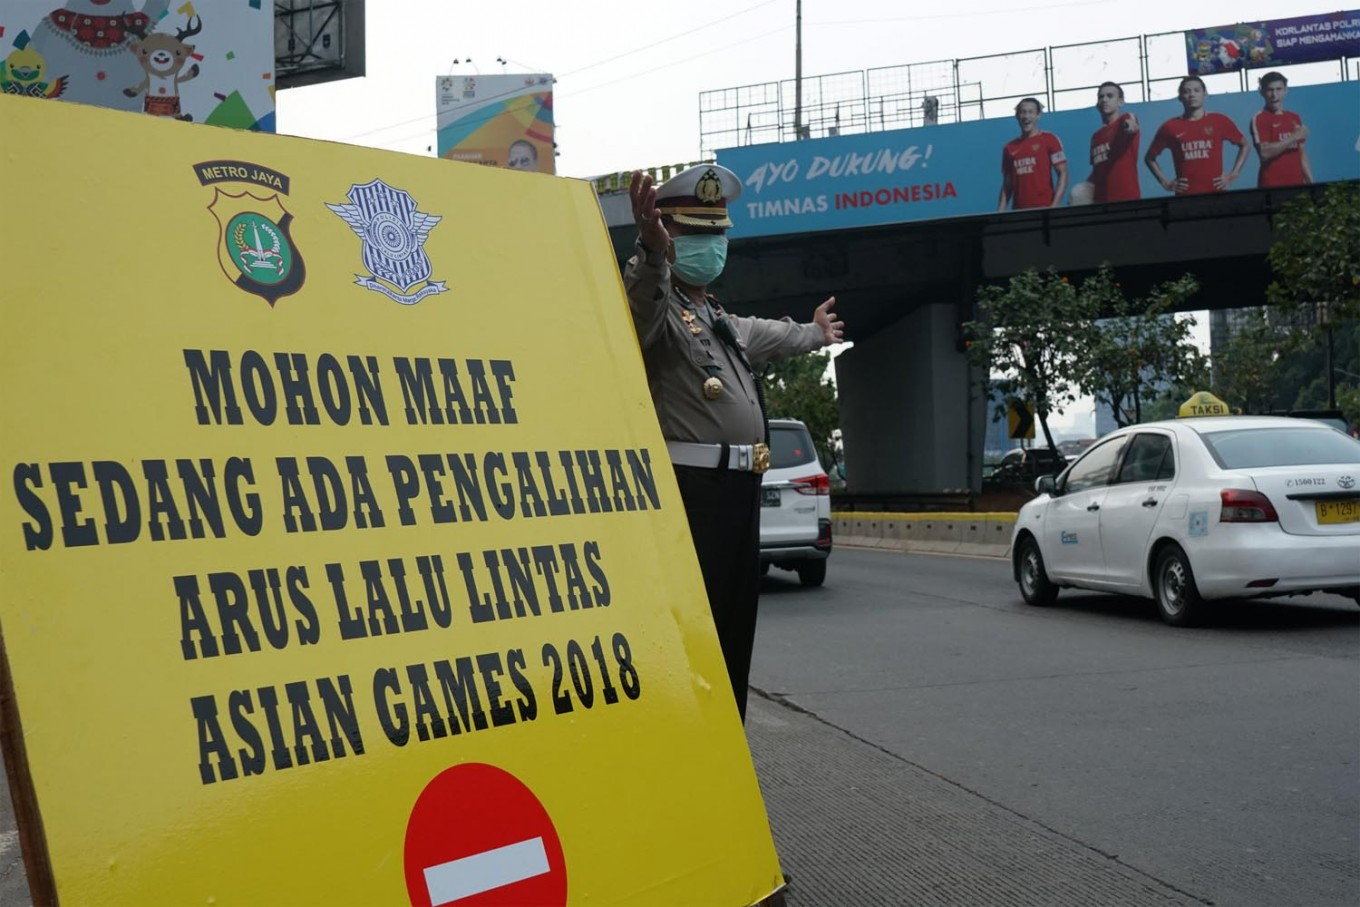 A police officer gives direction to motorists following to road restriction ahead of the Games closing ceremony in Jakarta. JP/Umair Rizaludin